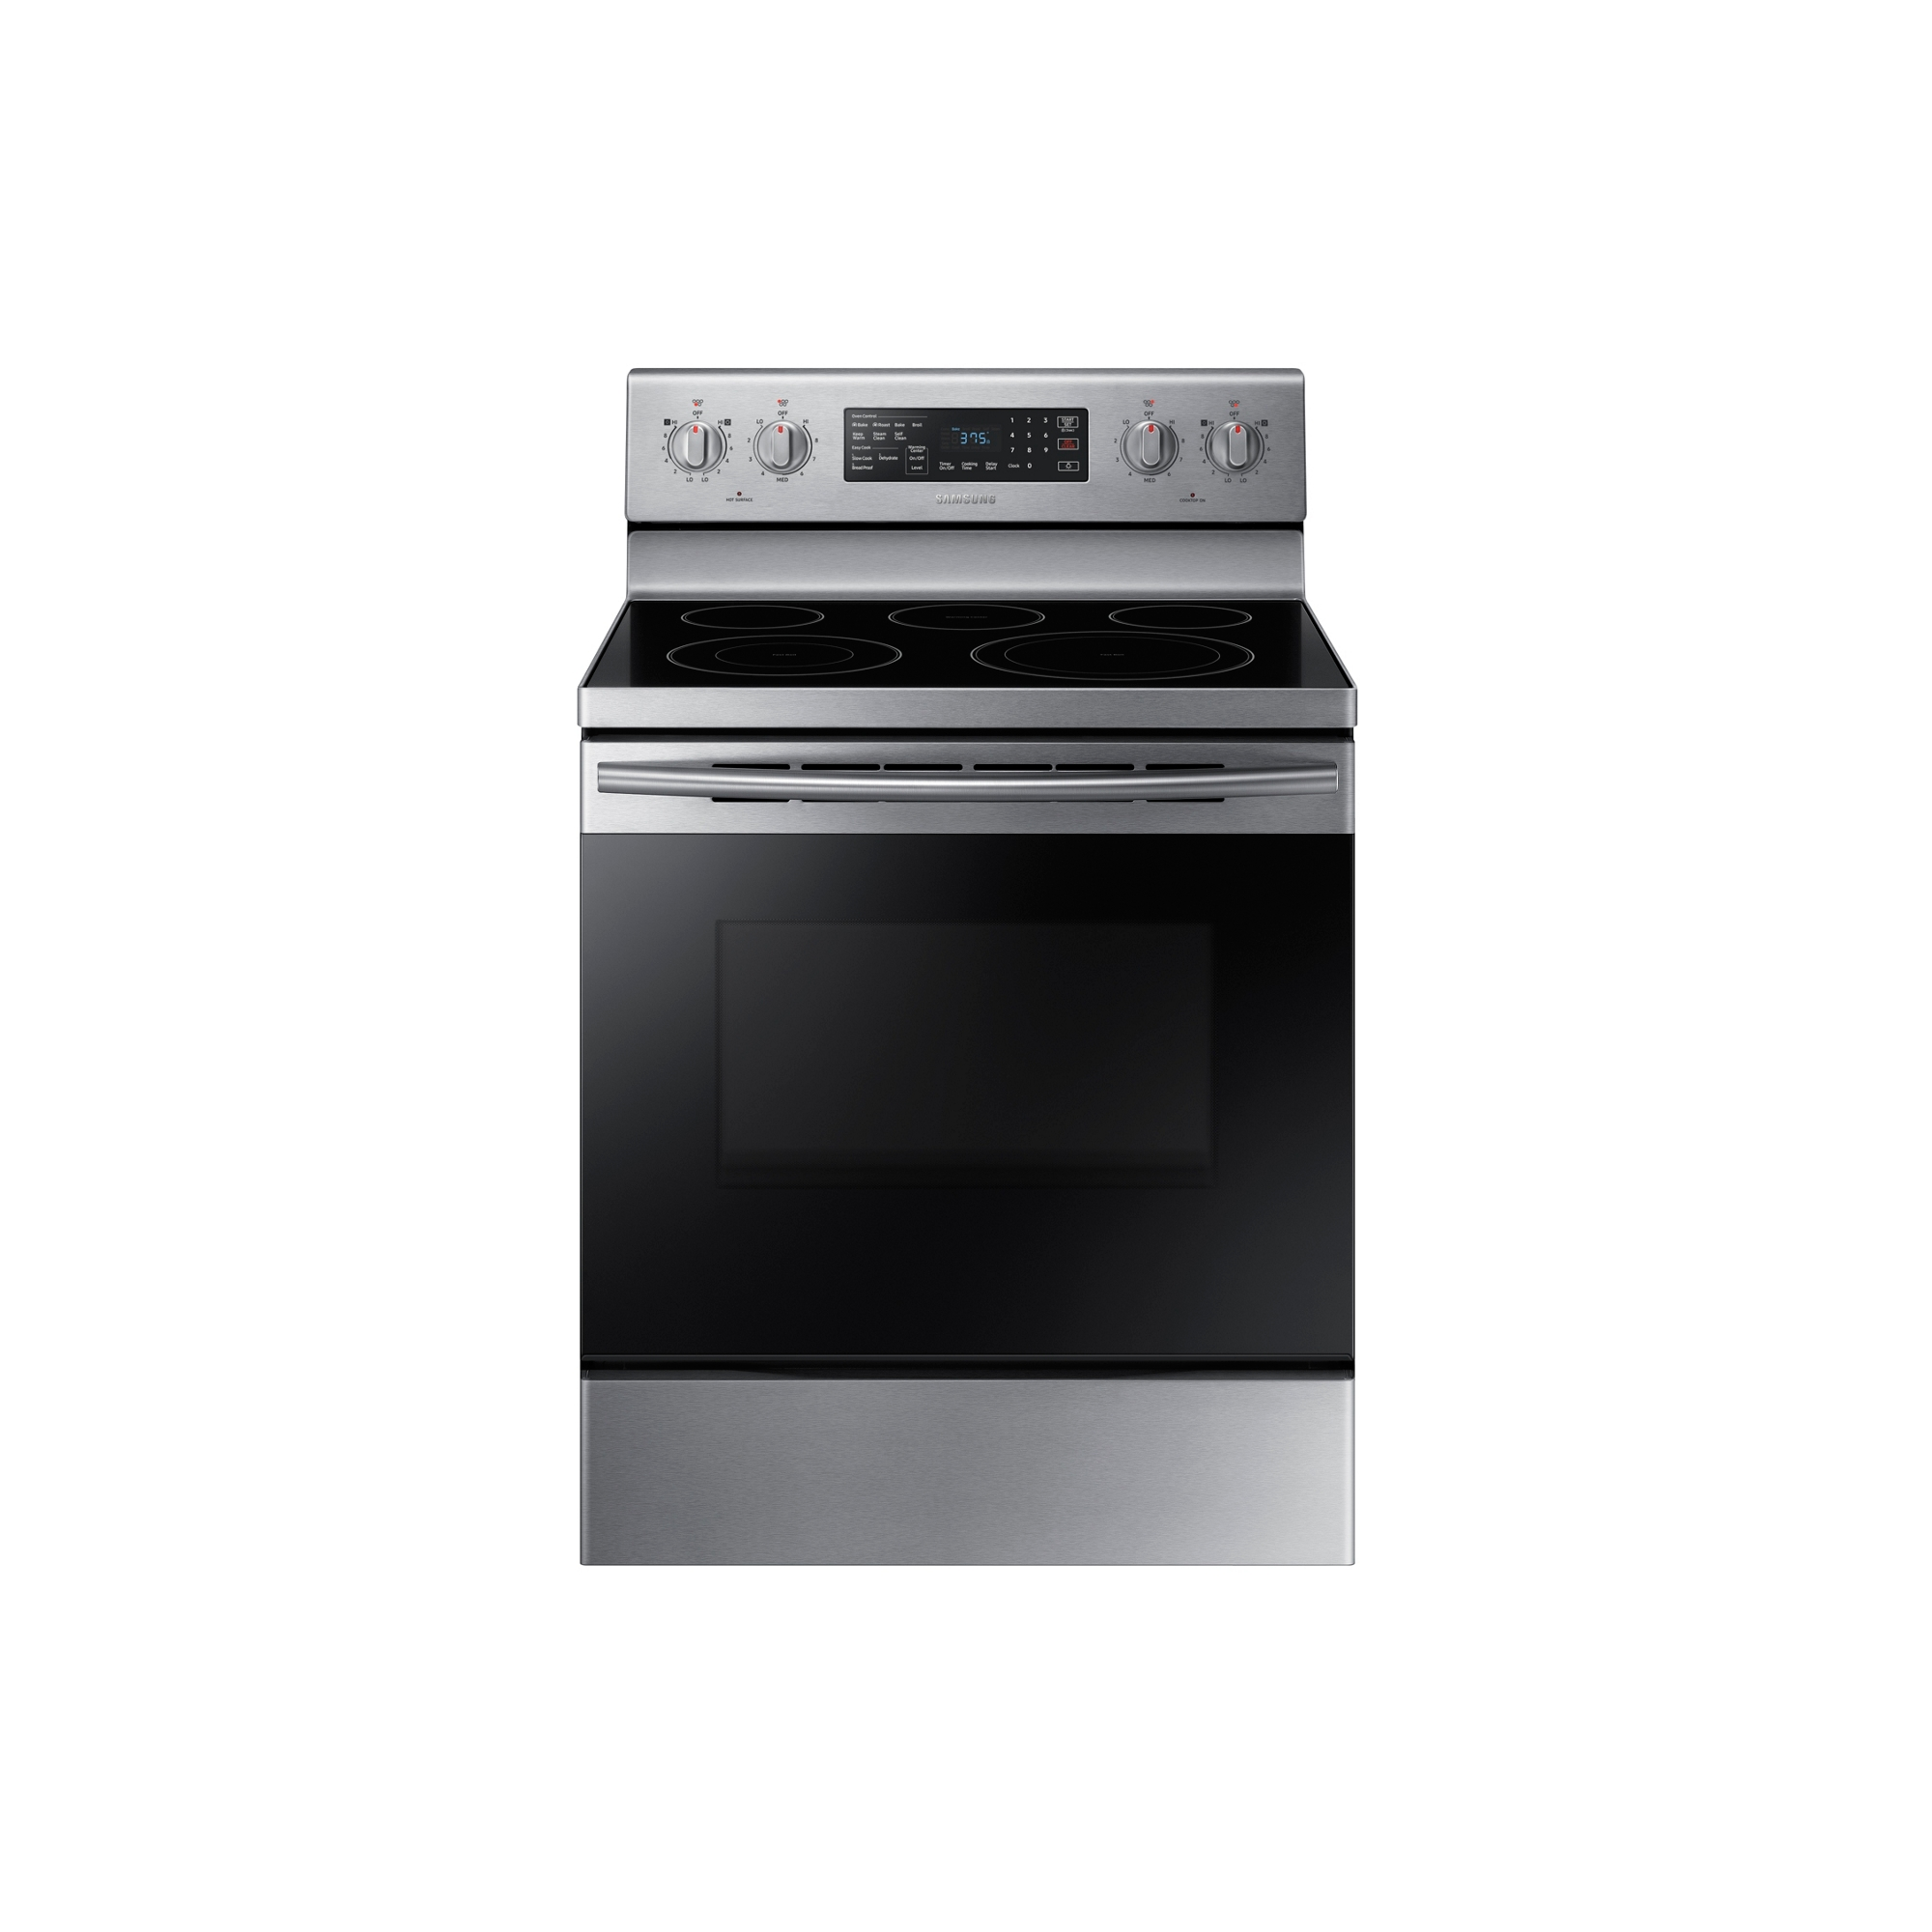 59 Cu Ft Freestanding Electric Range With Warming Center Ranges Wiring Outlet Ne59m4320ss Aa Samsung Us